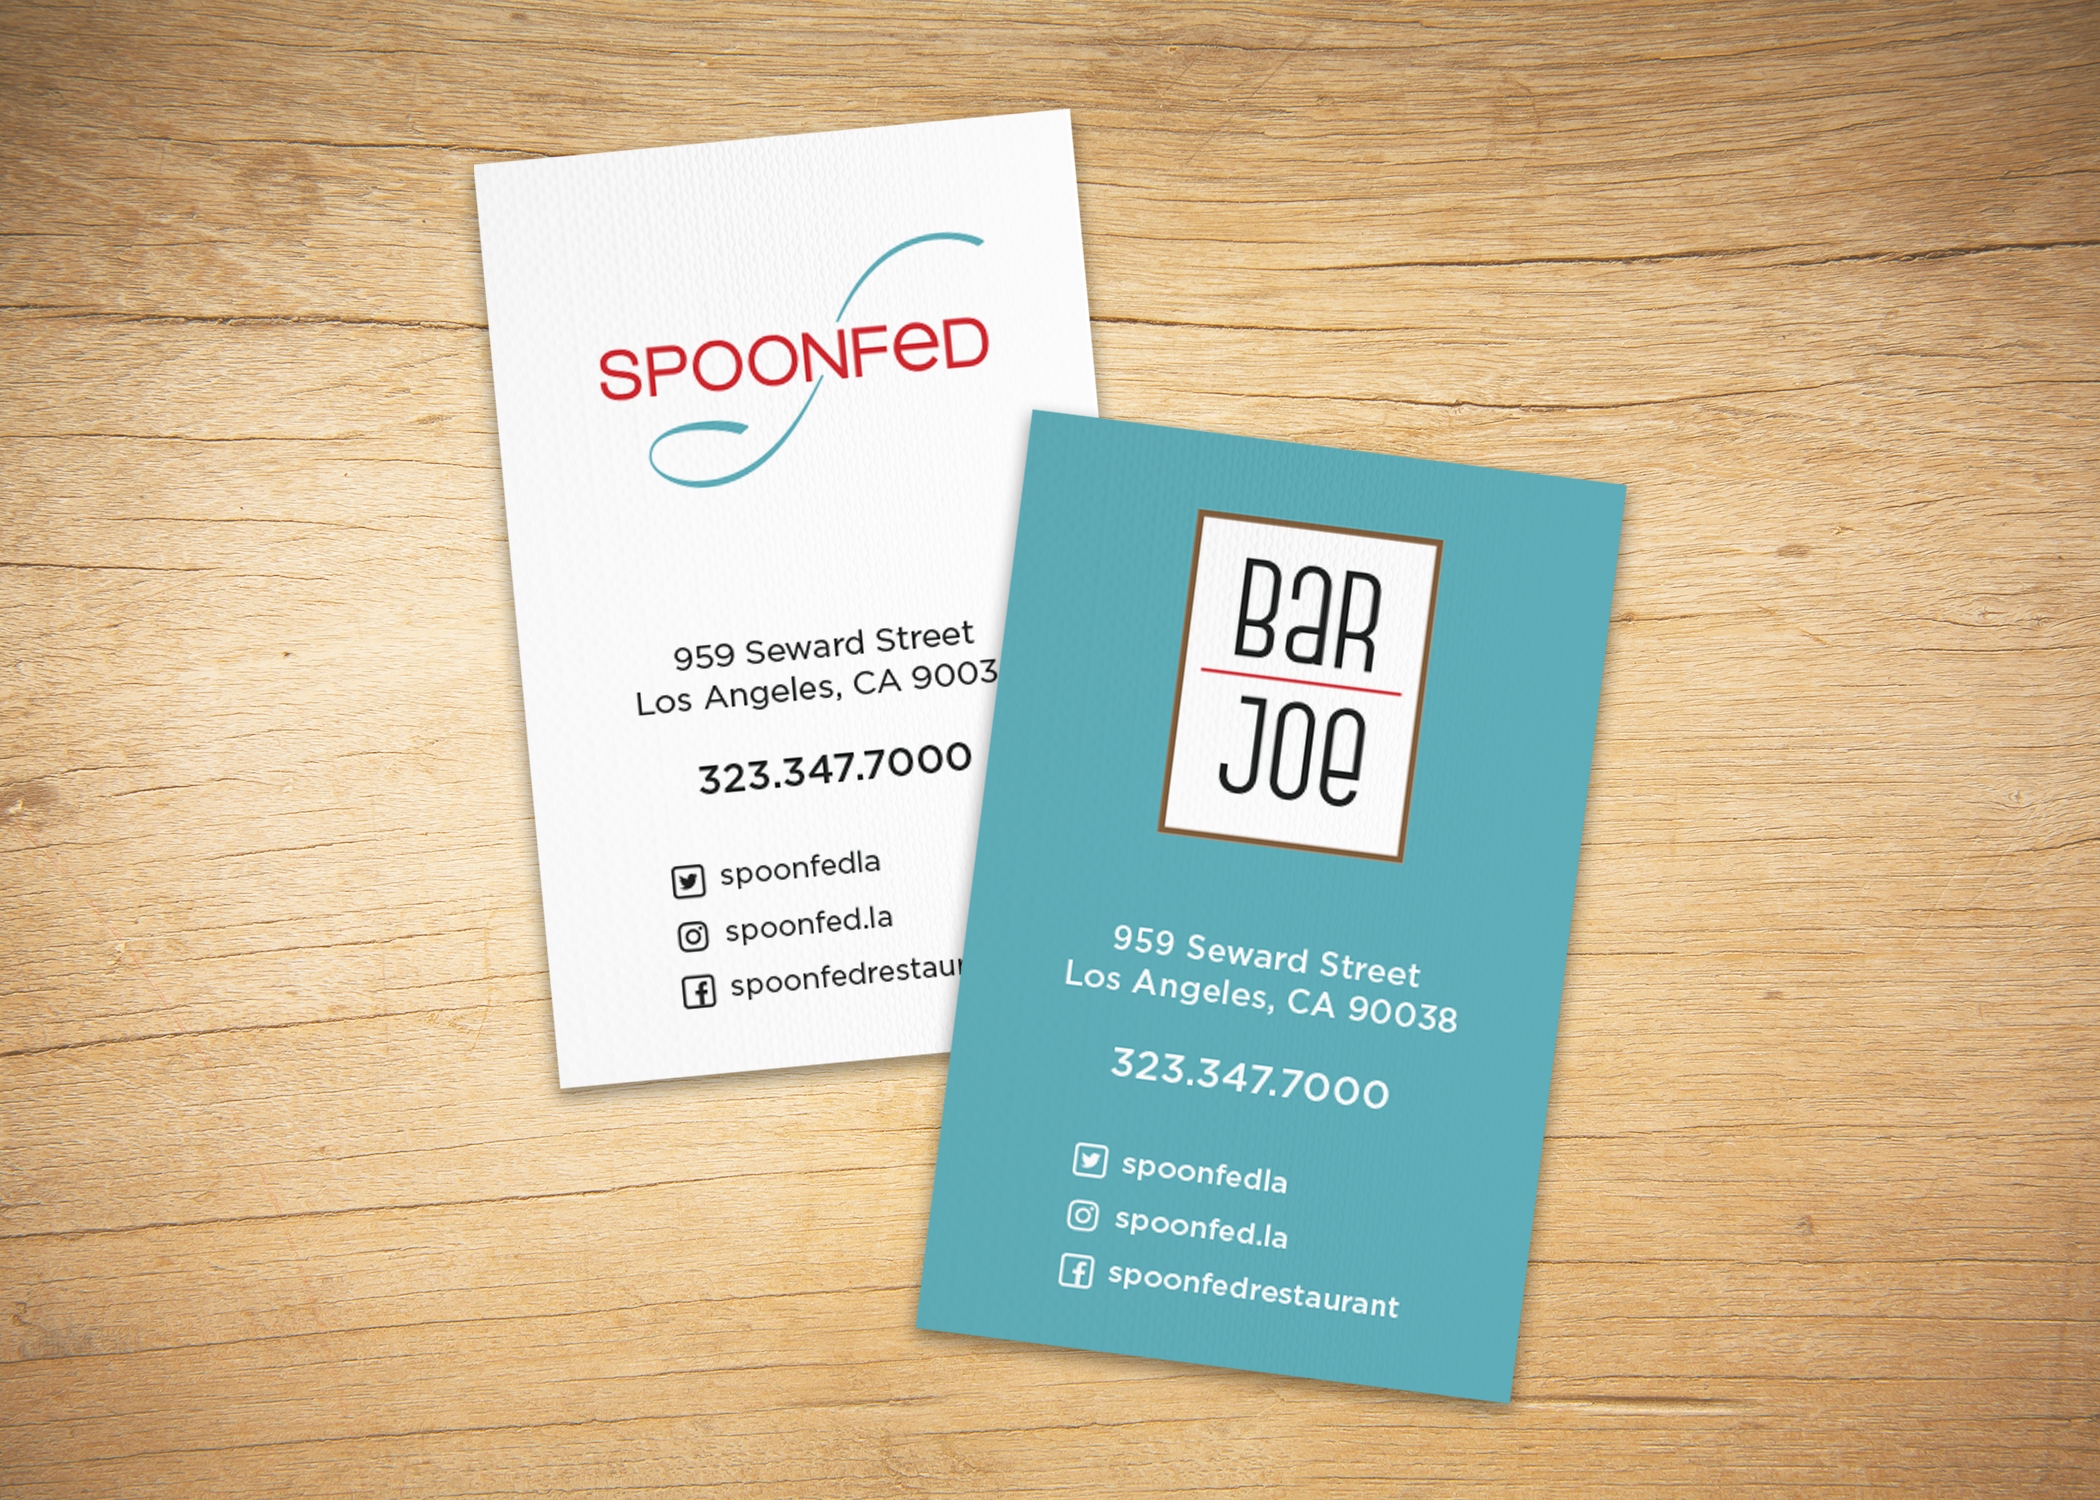 Business card design with the restaurant on one side, bar on the other.